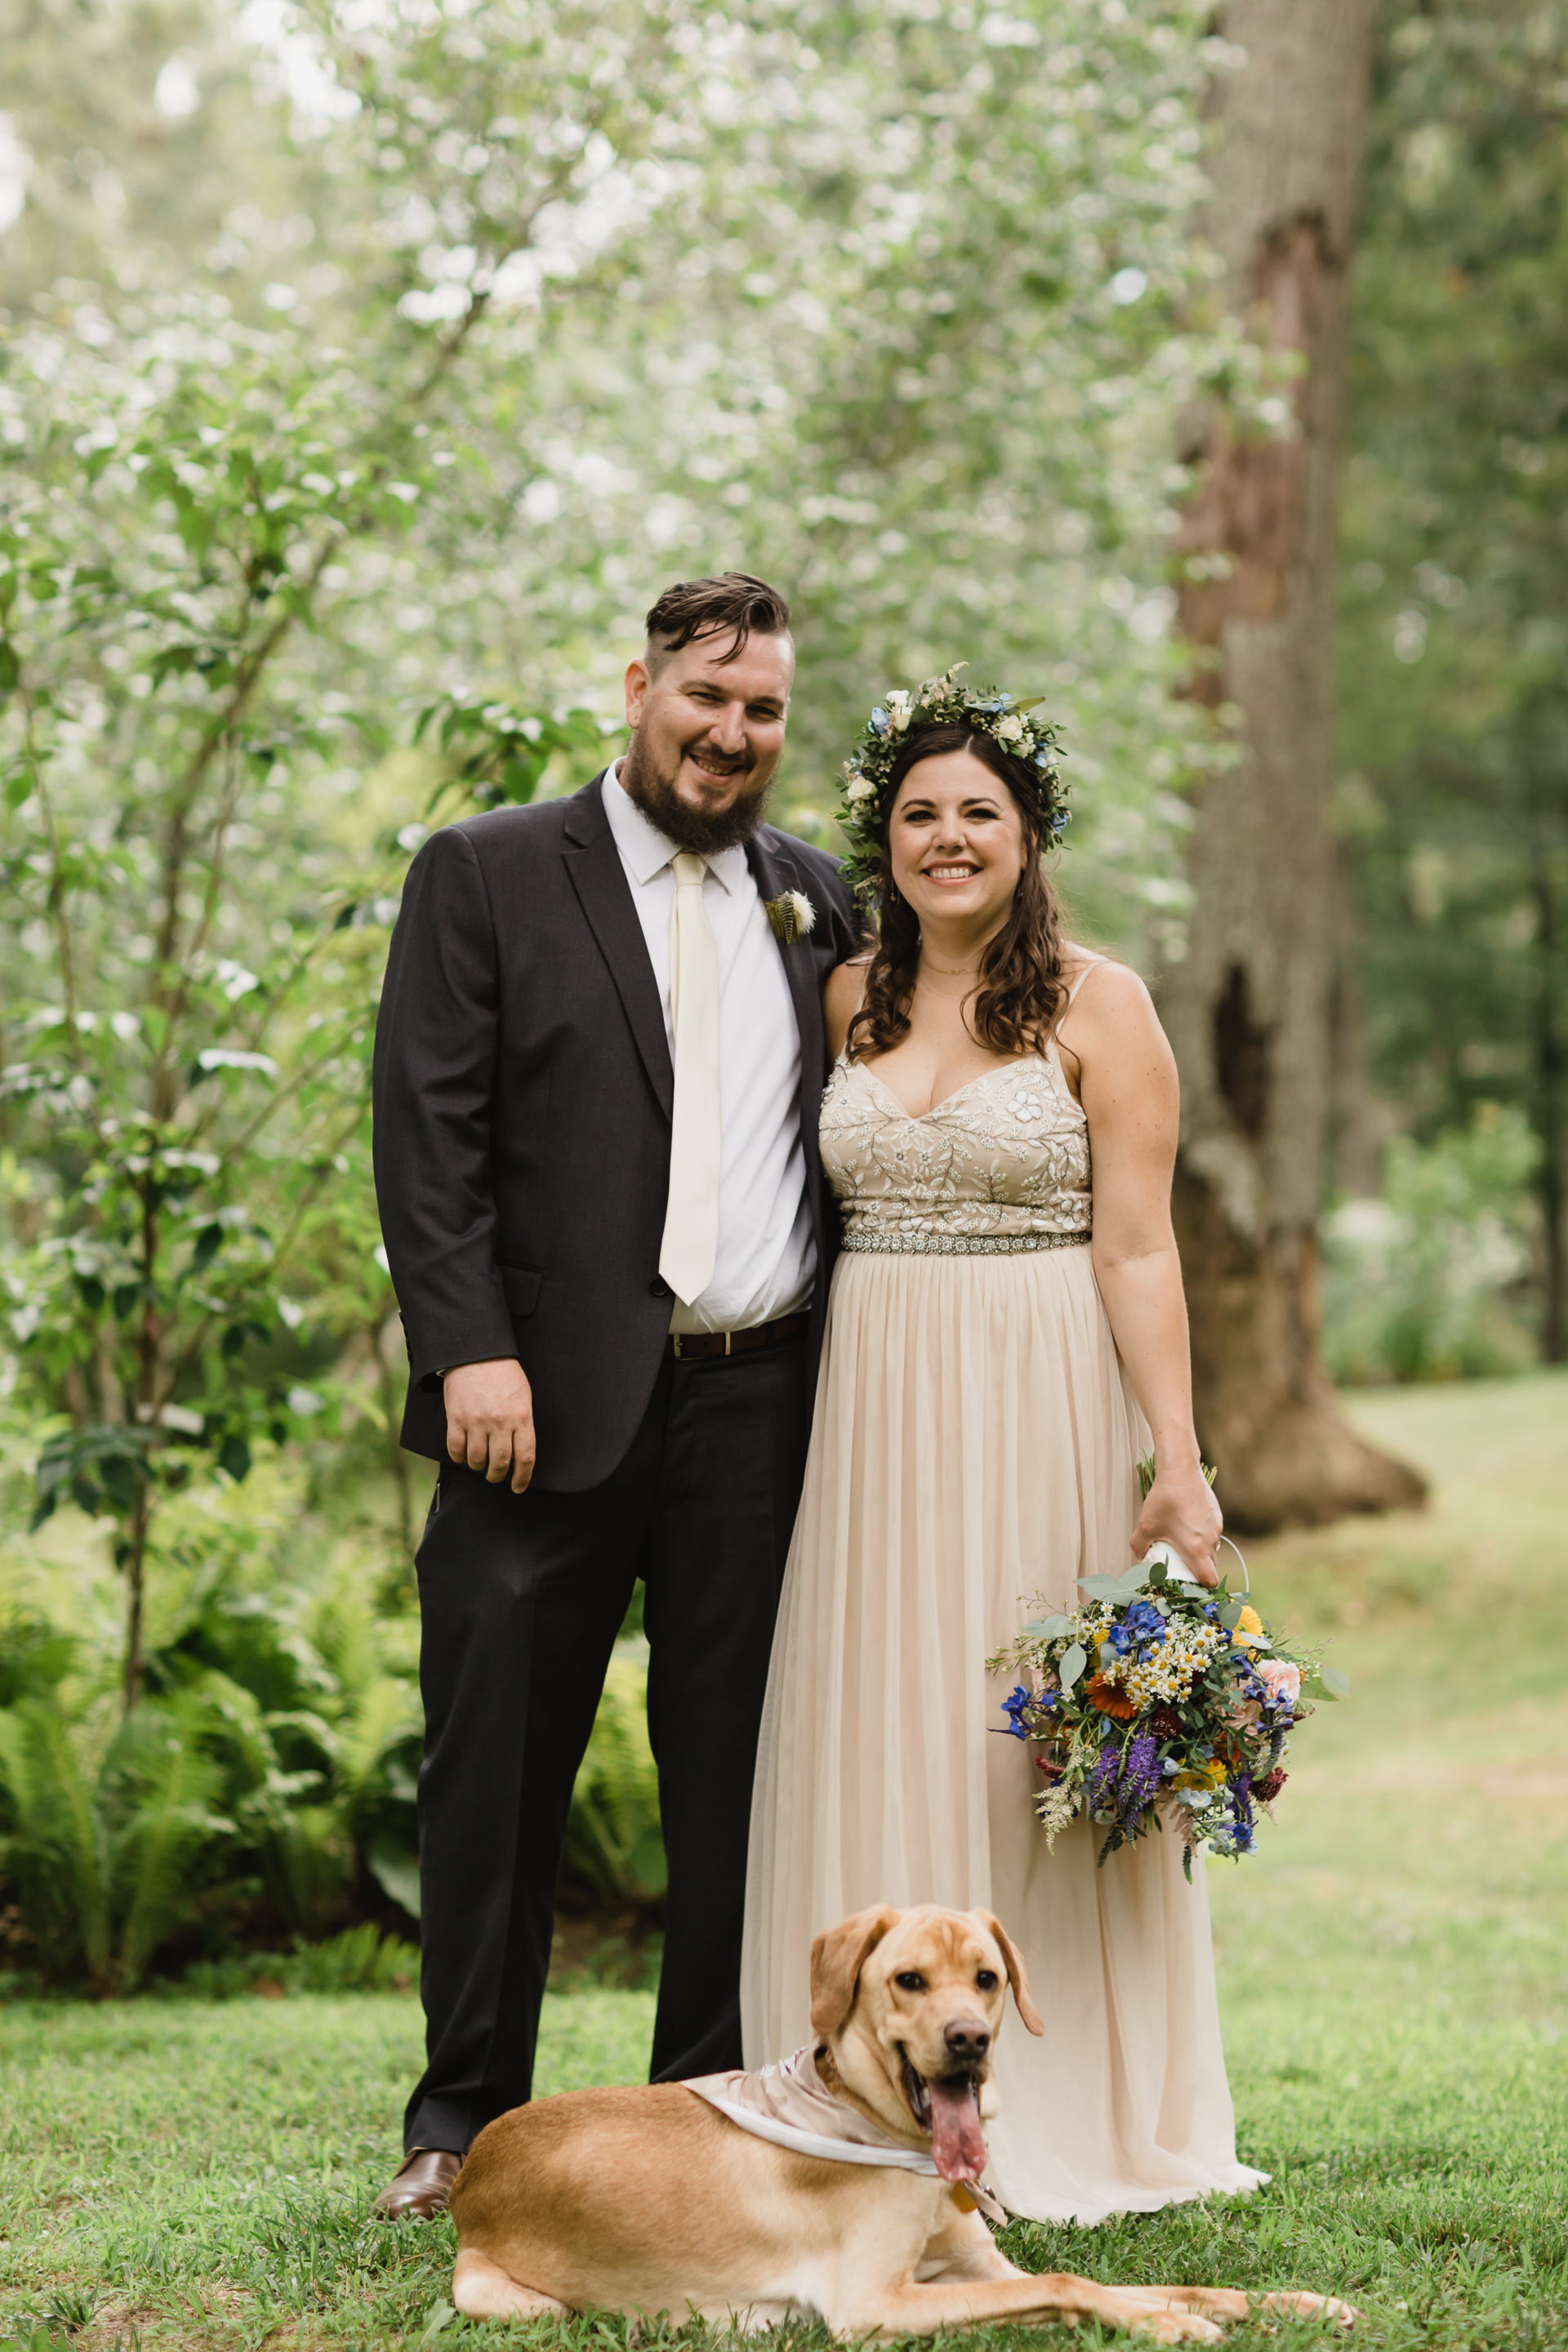 Gianna Keiko Atlanta NYC California Wedding Photographer_Sneak Peek-6.jpg